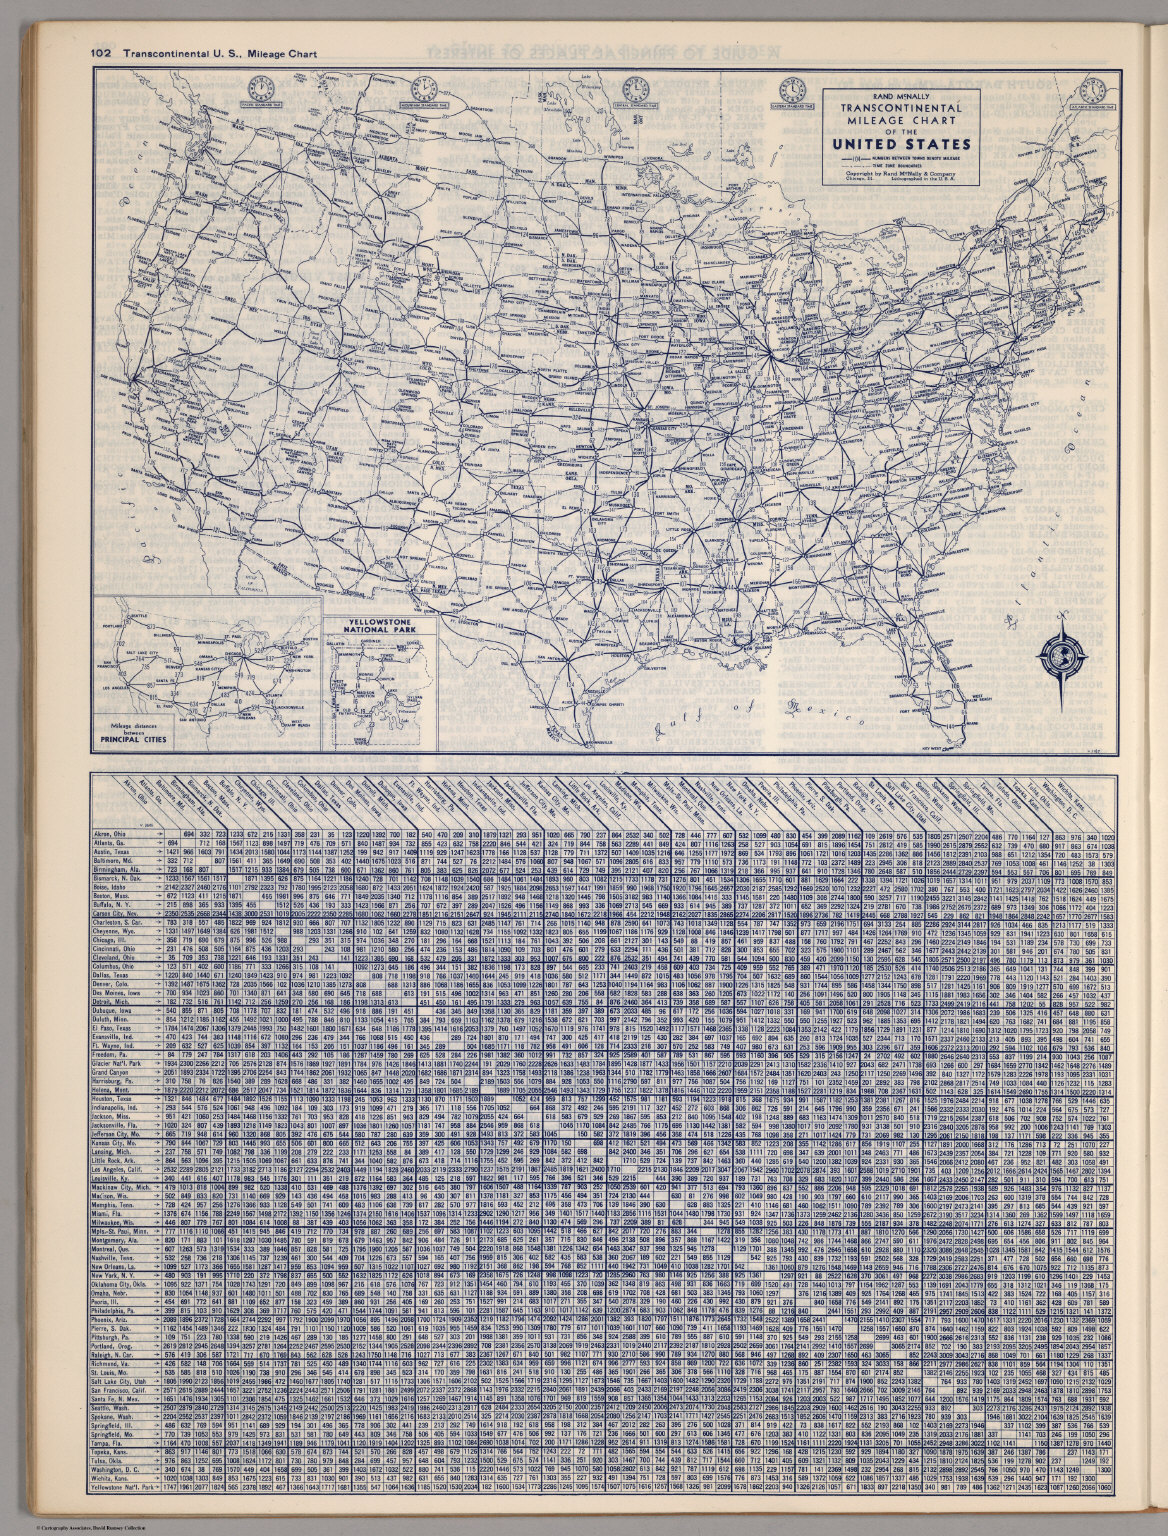 Us Map Mileage Chart Transcontinental Mileage Chart of the United States   David Rumsey